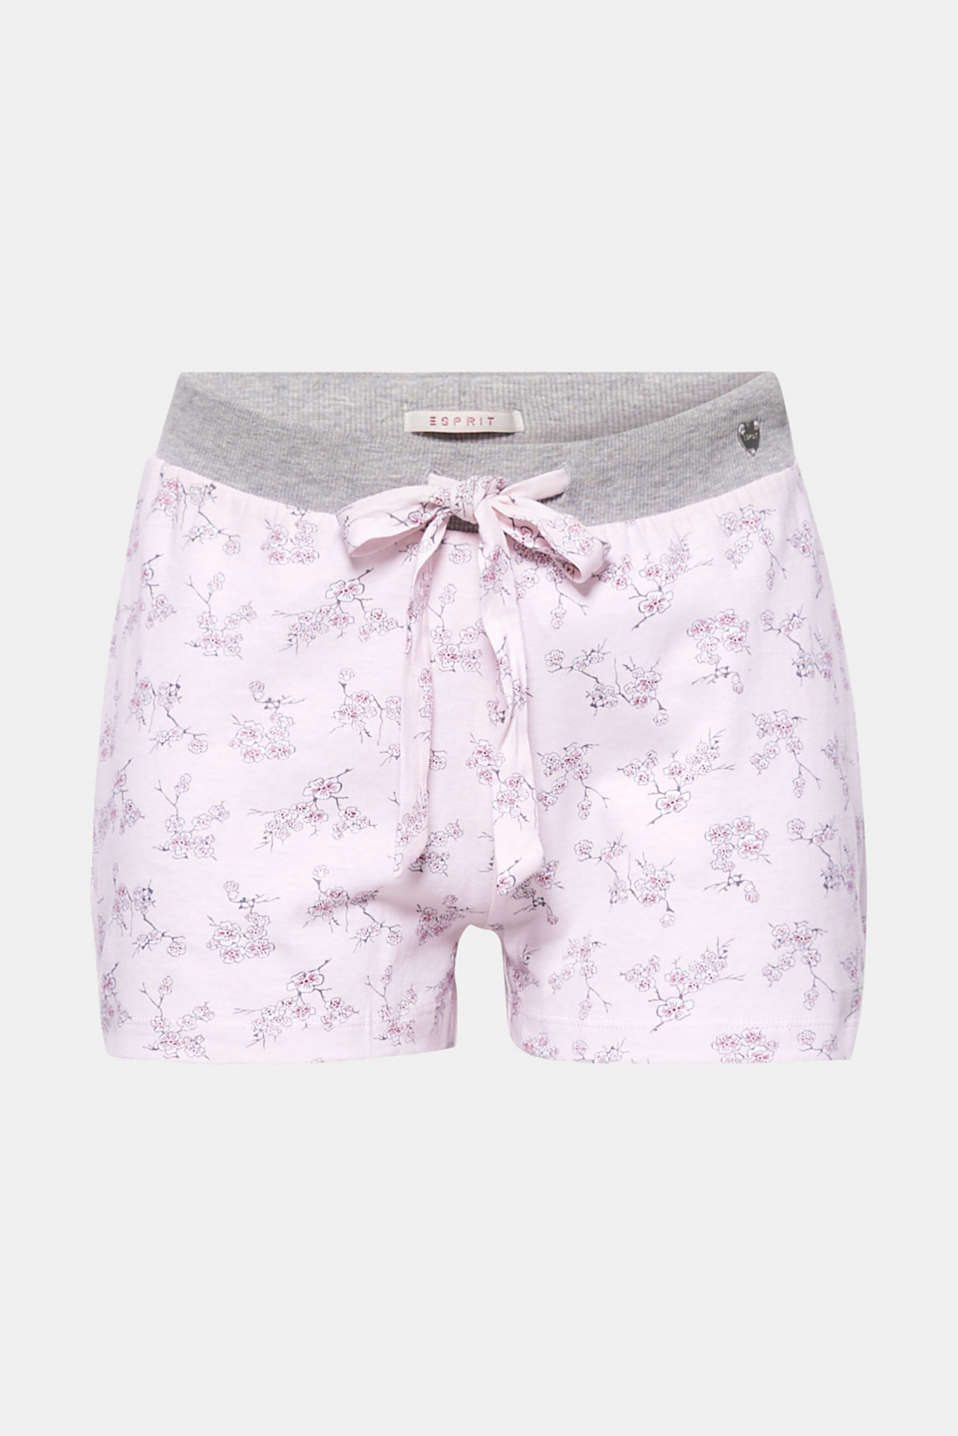 These lightweight, cotton-jersey shorts with a cherry blossom print inspired by Japan guarantee sweet dreams!